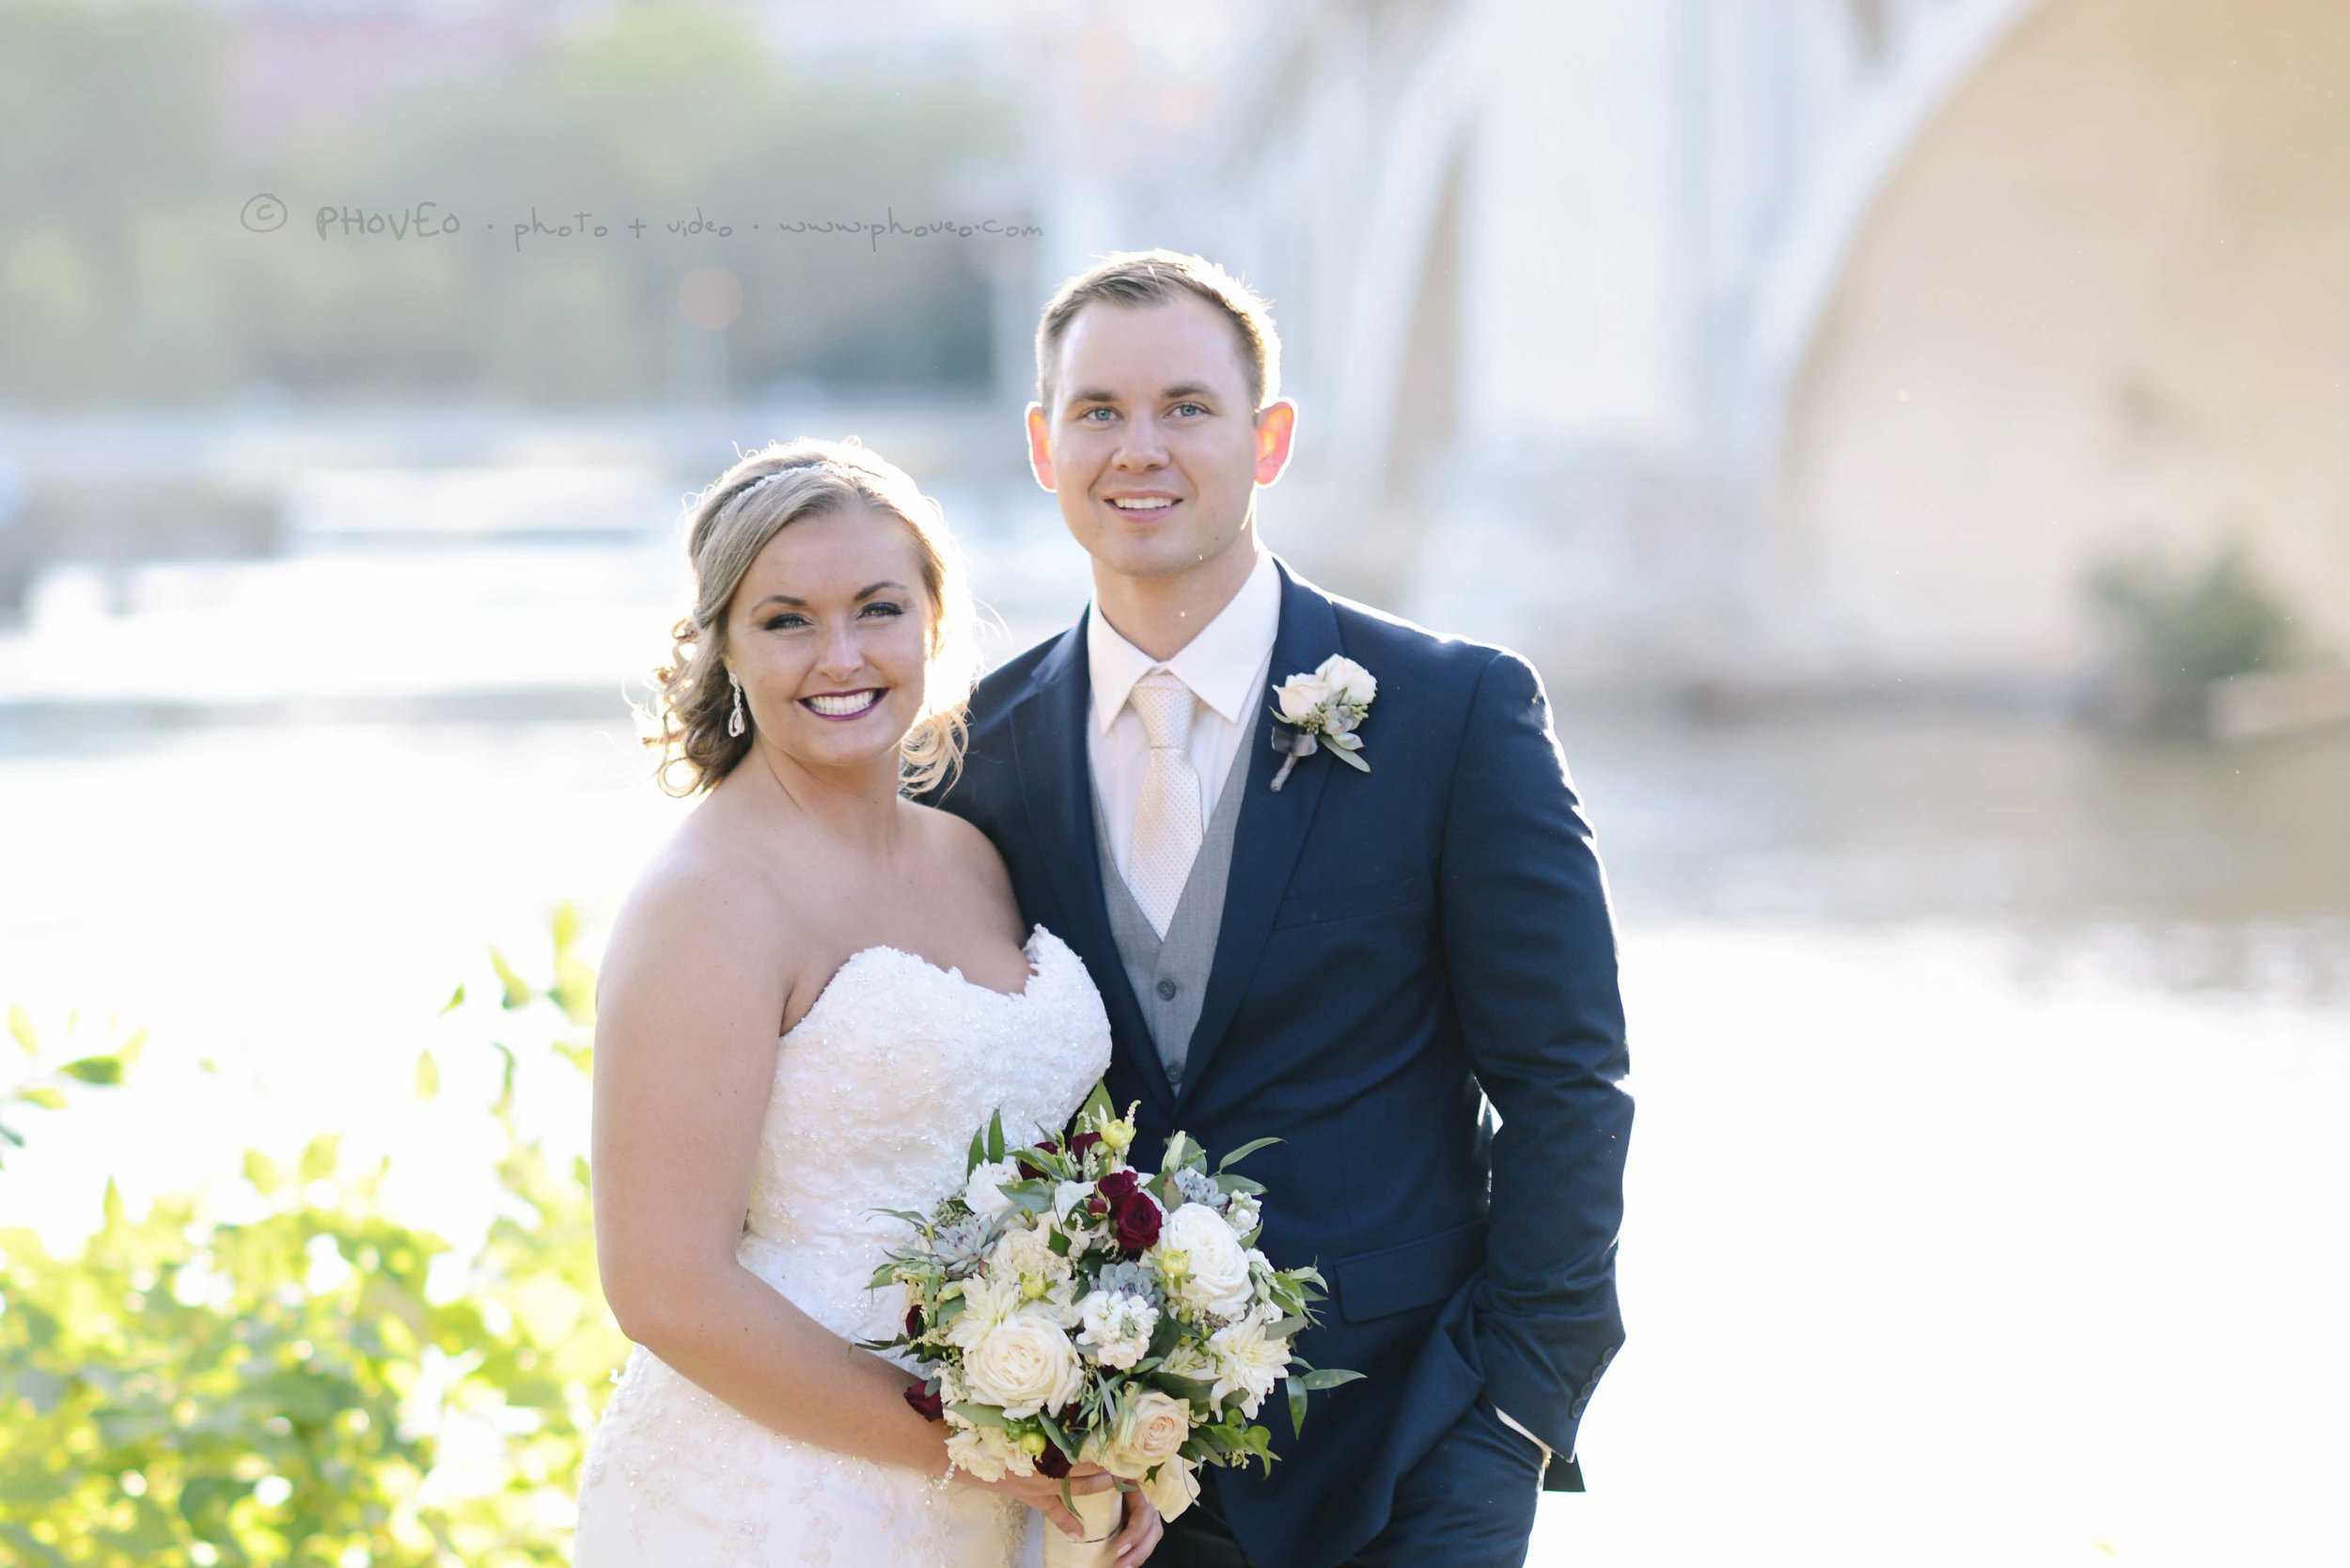 WM_20180922_Allie+Bryant_3.jpg